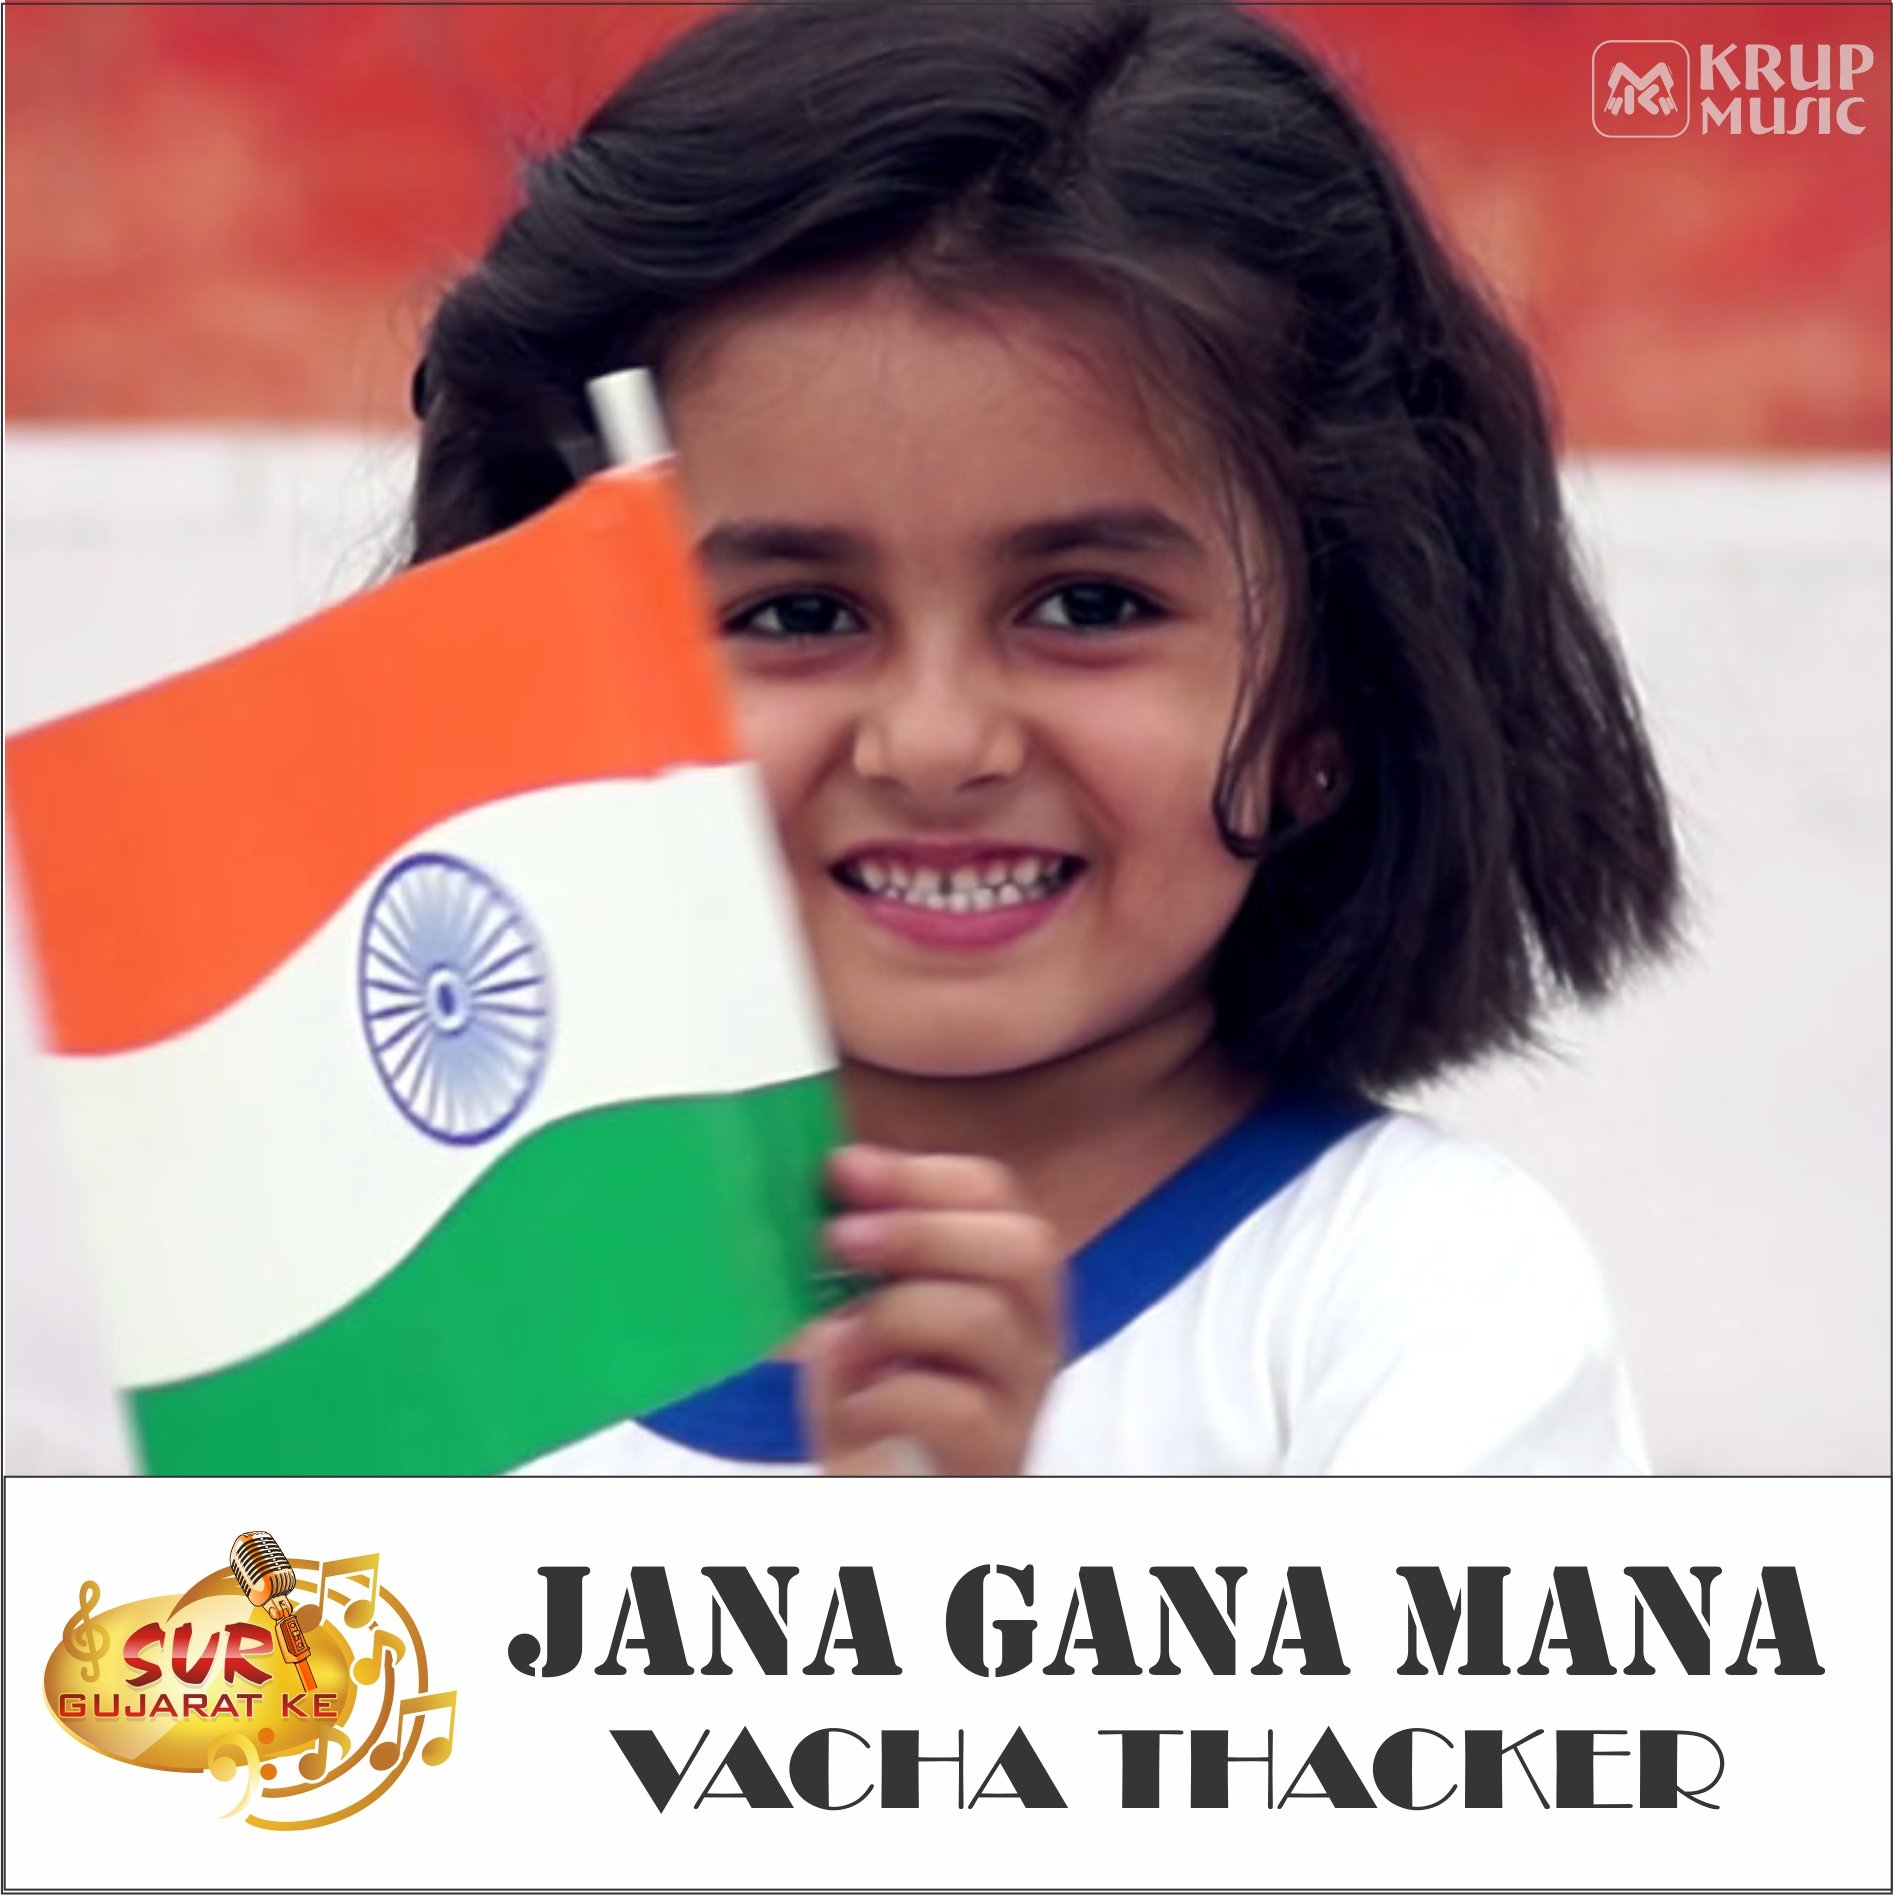 The Youngest Singer Of India & Notation Girl - Vacha Thacker